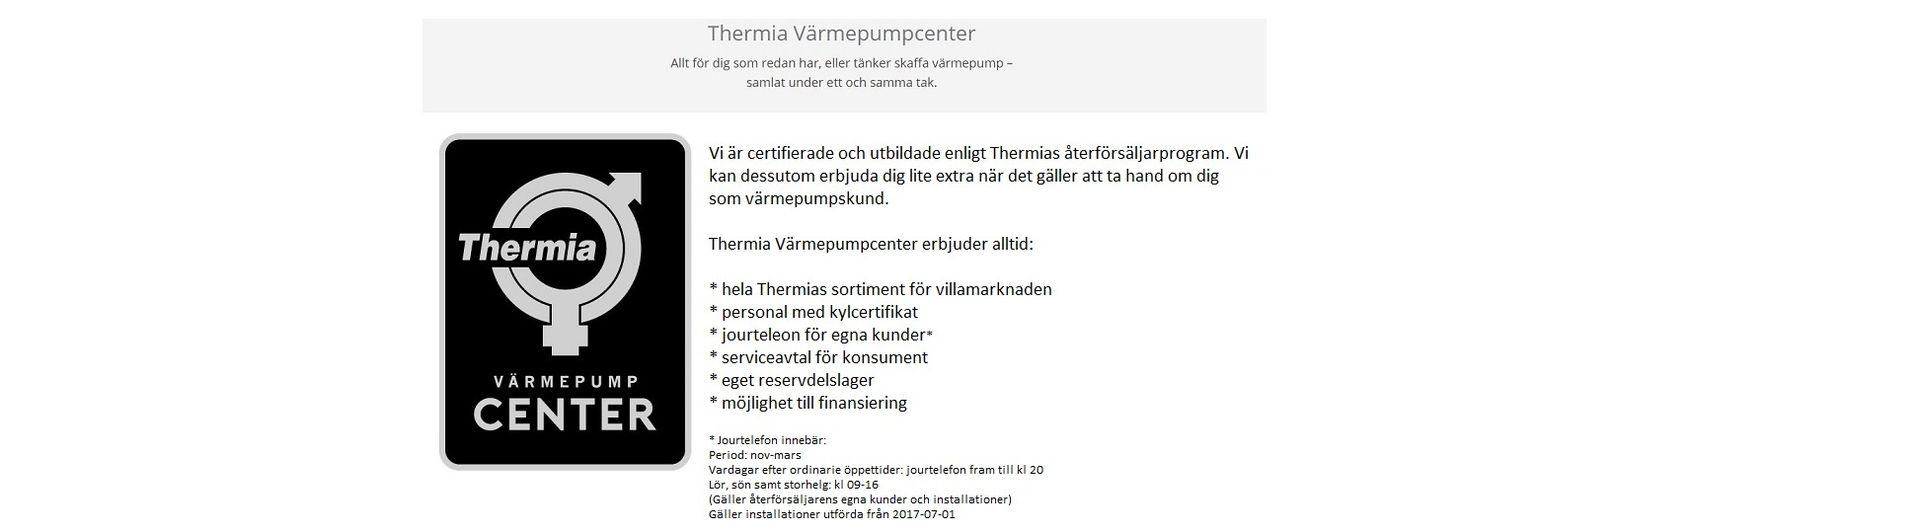 thermia-varmepumpcenter-71